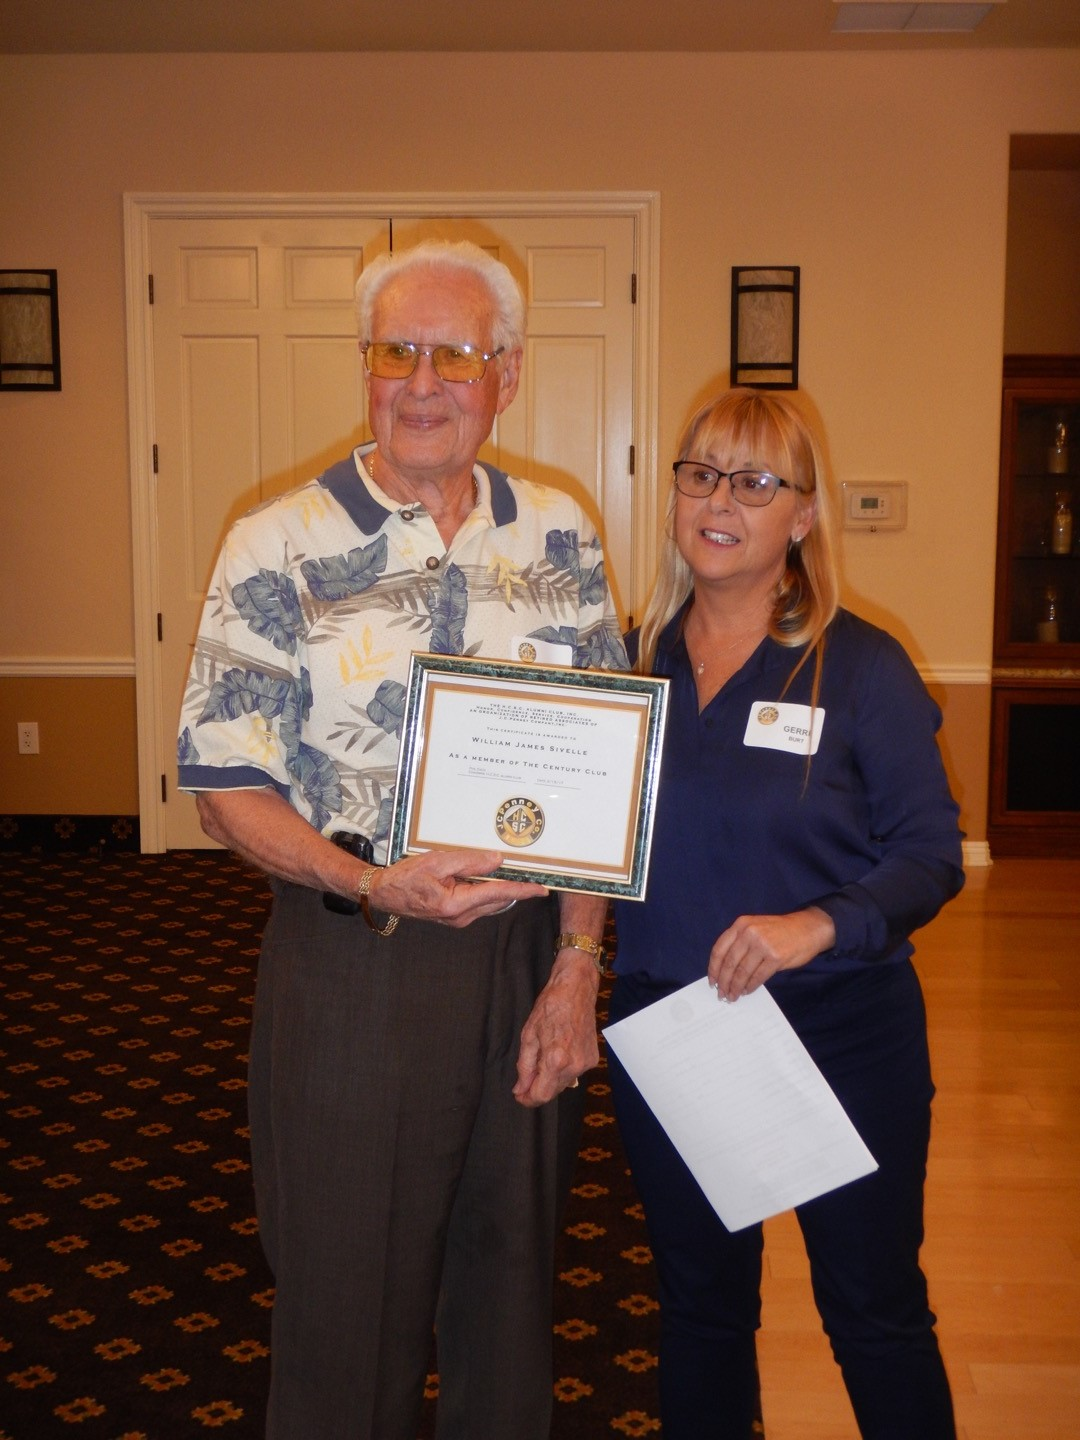 Jim Sivelle is recognized with  Membership In the CENTURY CLUB presented by President Gerri Burt